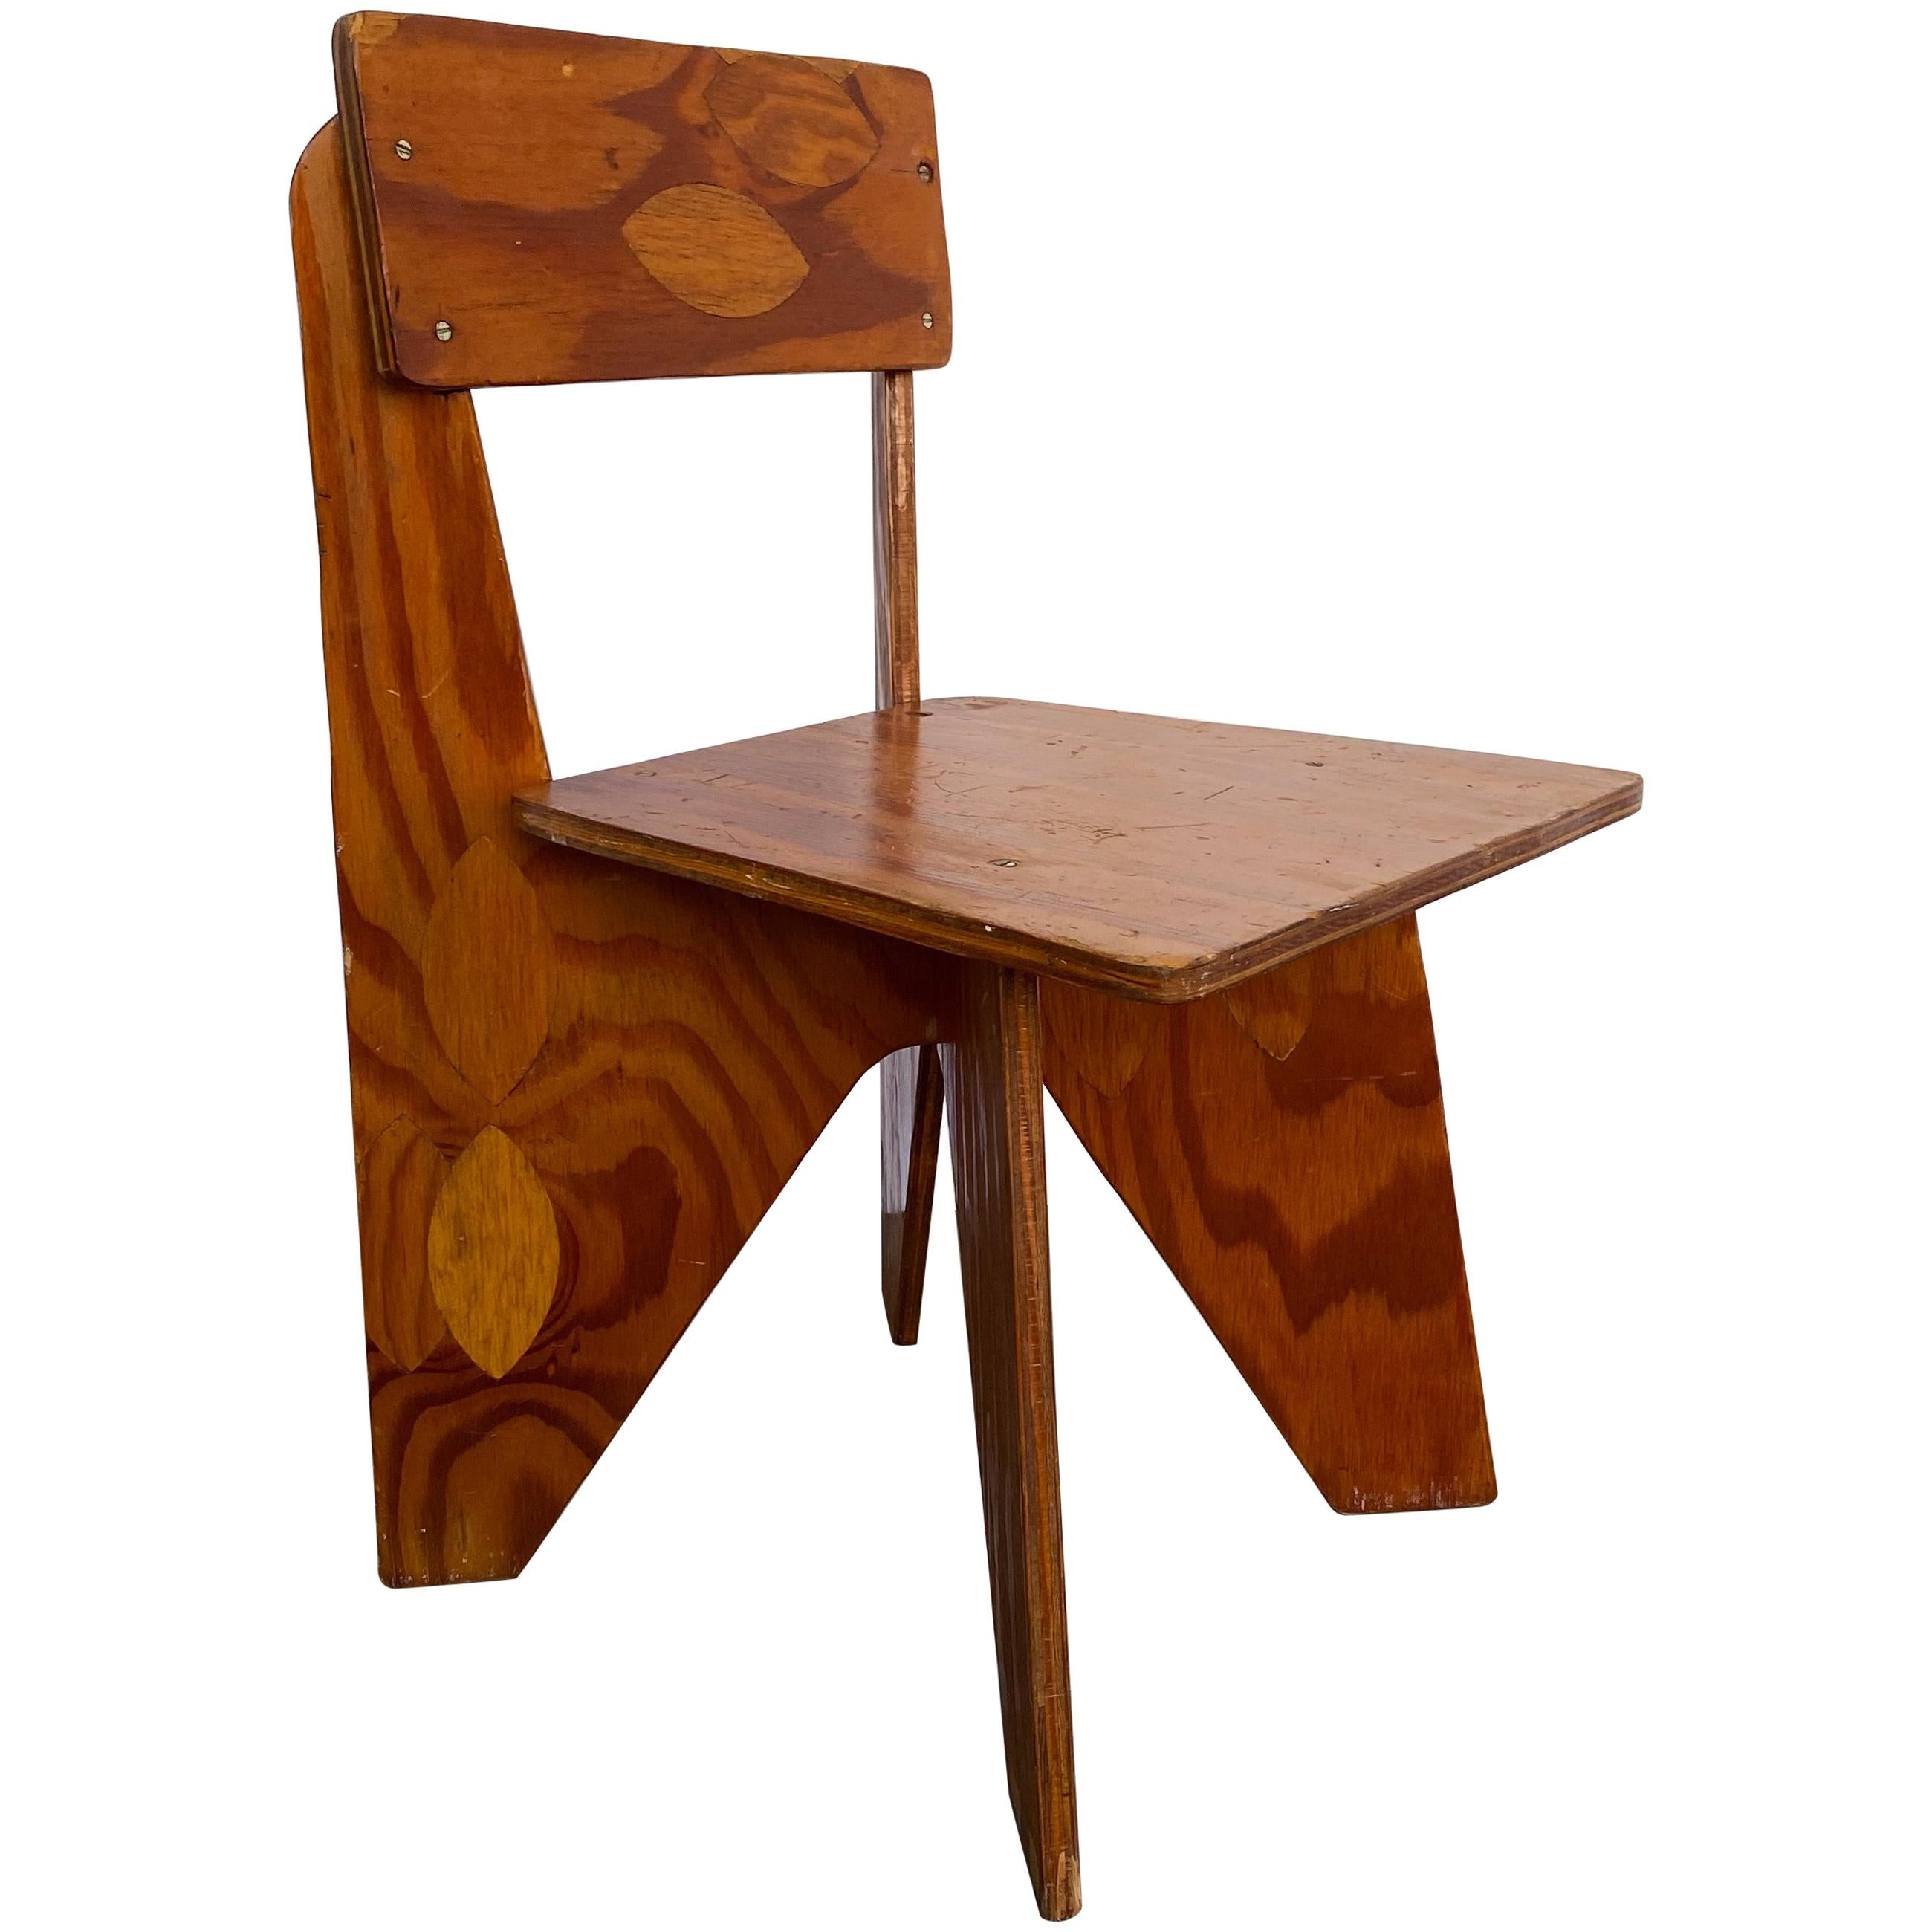 Mario Dal Fabbro Child's Chair in Plywood